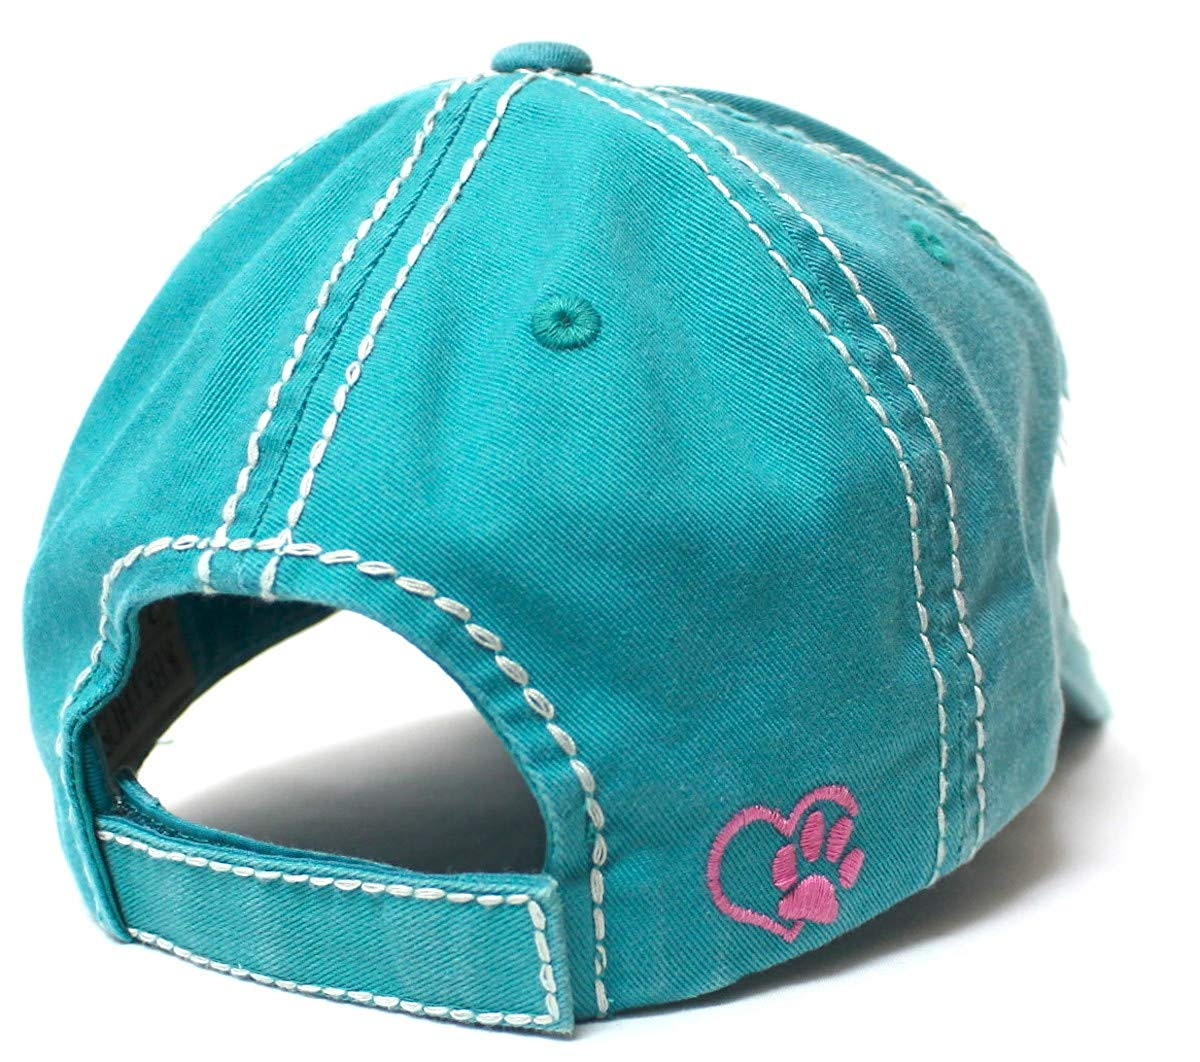 Women's Baseball Cap Crazy Dog Lady Patch Embroidery, Turquoise - Caps 'N Vintage